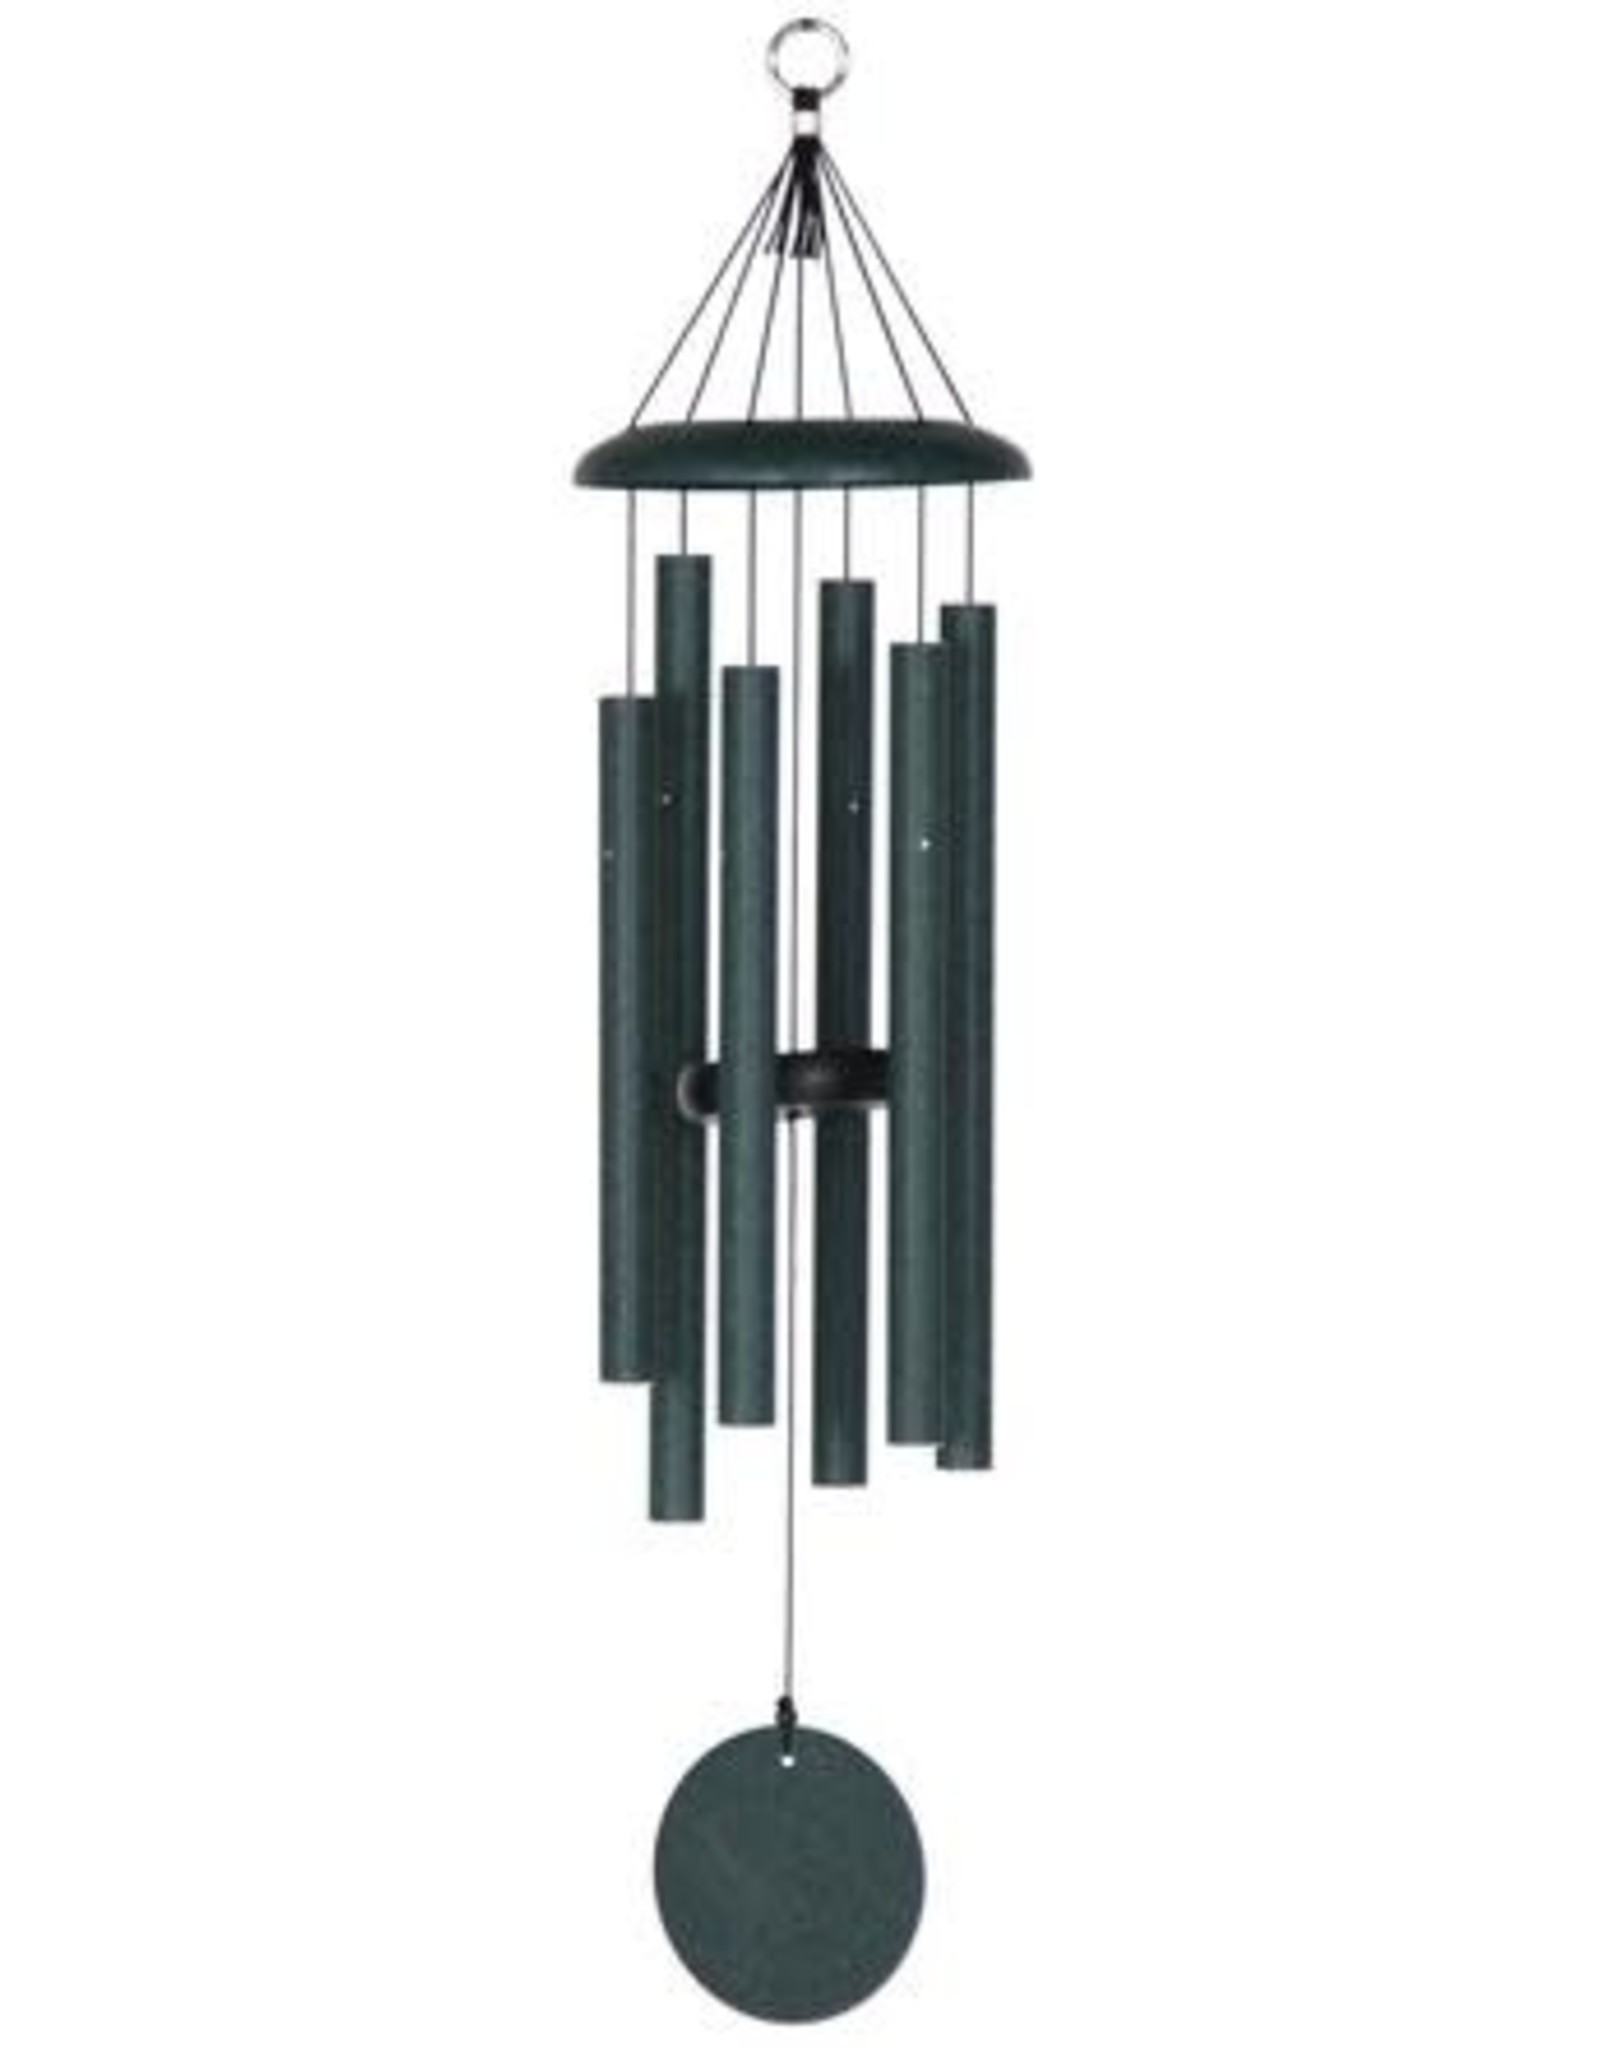 Wind River Chimes 36'' Green Chime